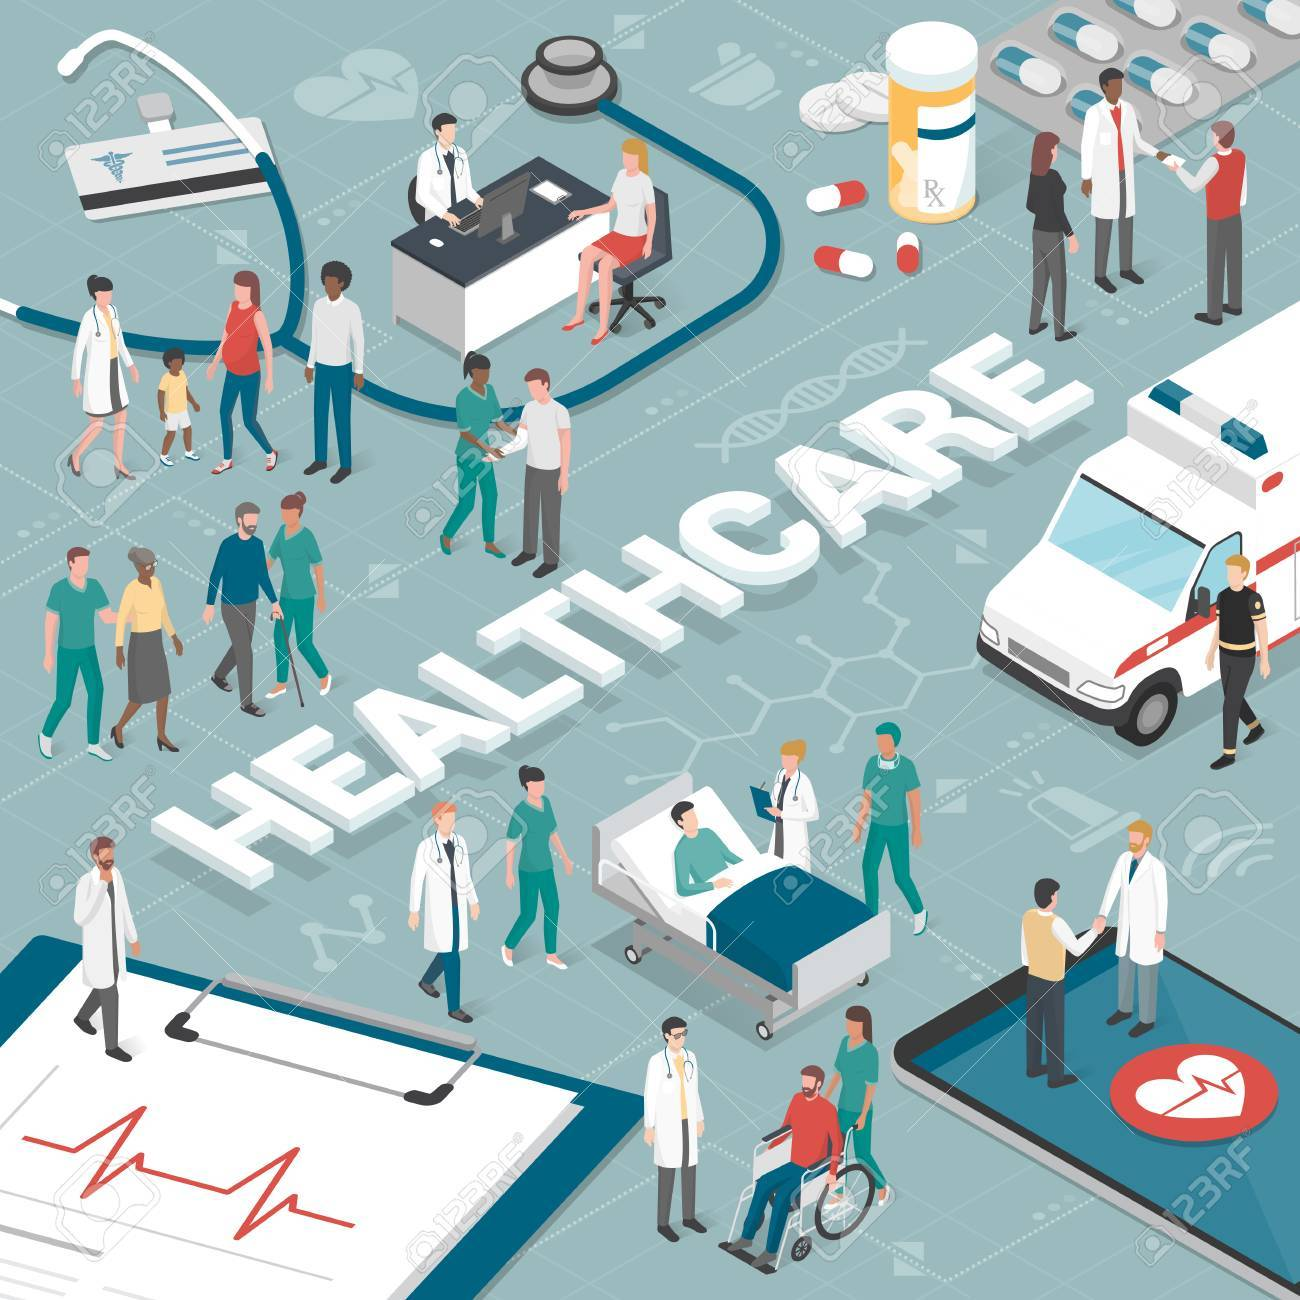 Doctors and nurses taking care of the patients and connecting together online: healthcare and technology concept. - 86088035